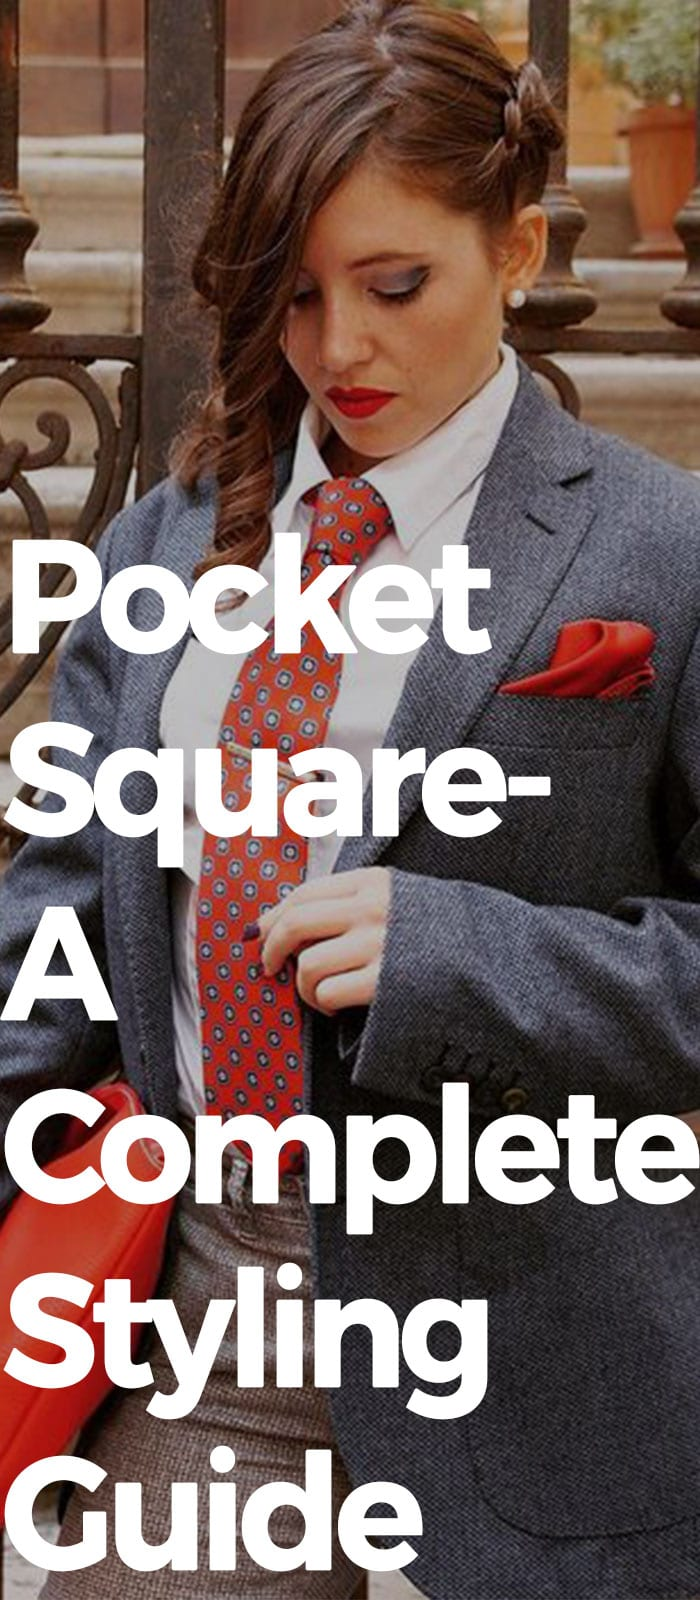 Pocket Square- A Complete Styling Guide For Women.